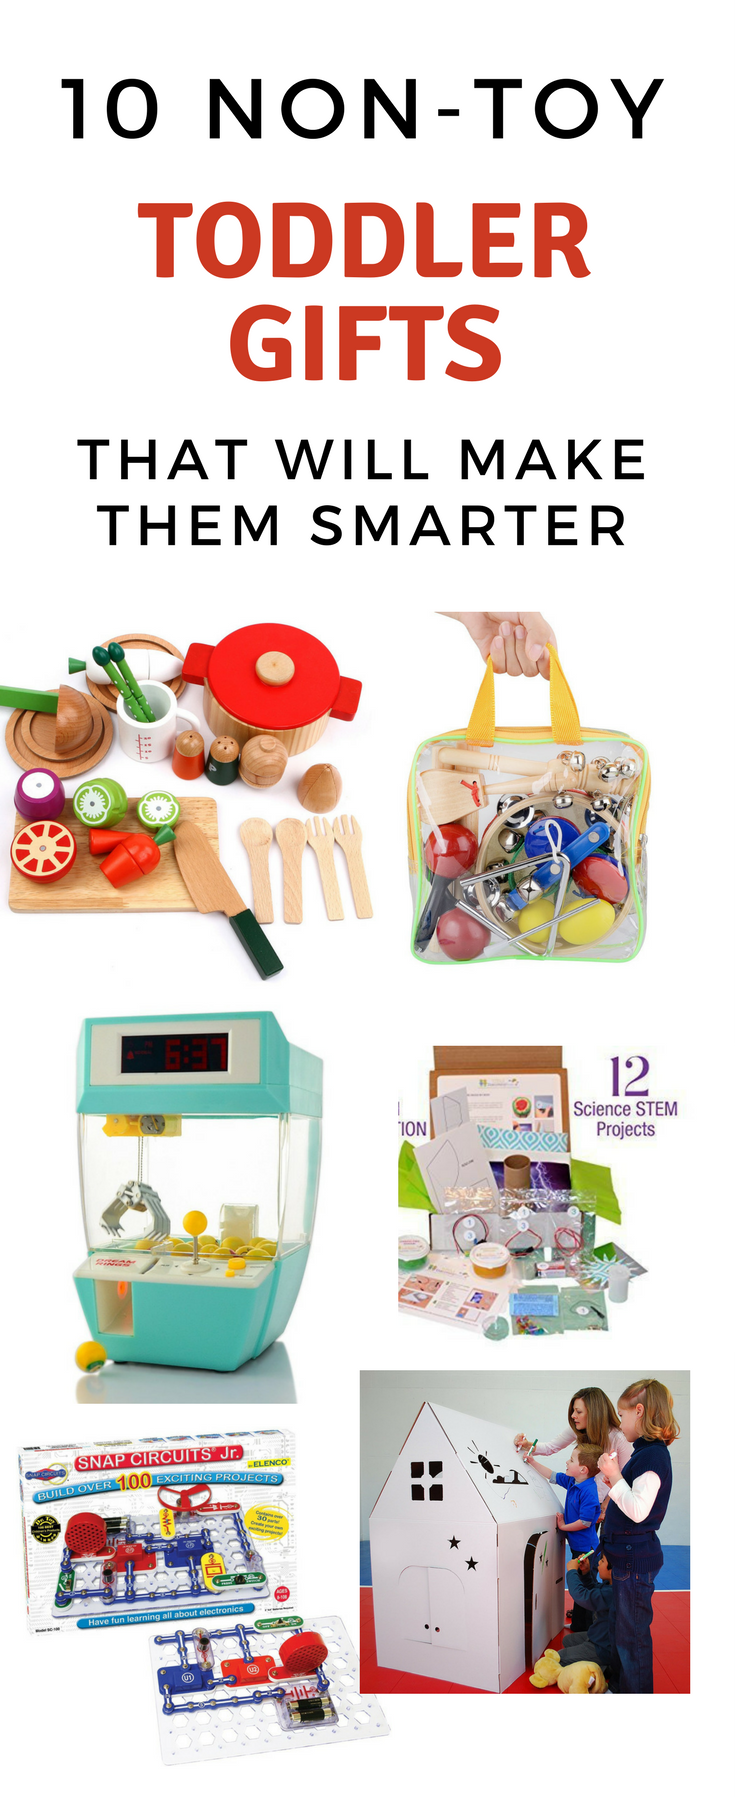 I Love These Toddler Gifts Because They Are Creative But Not Adding Another Toy To My Life